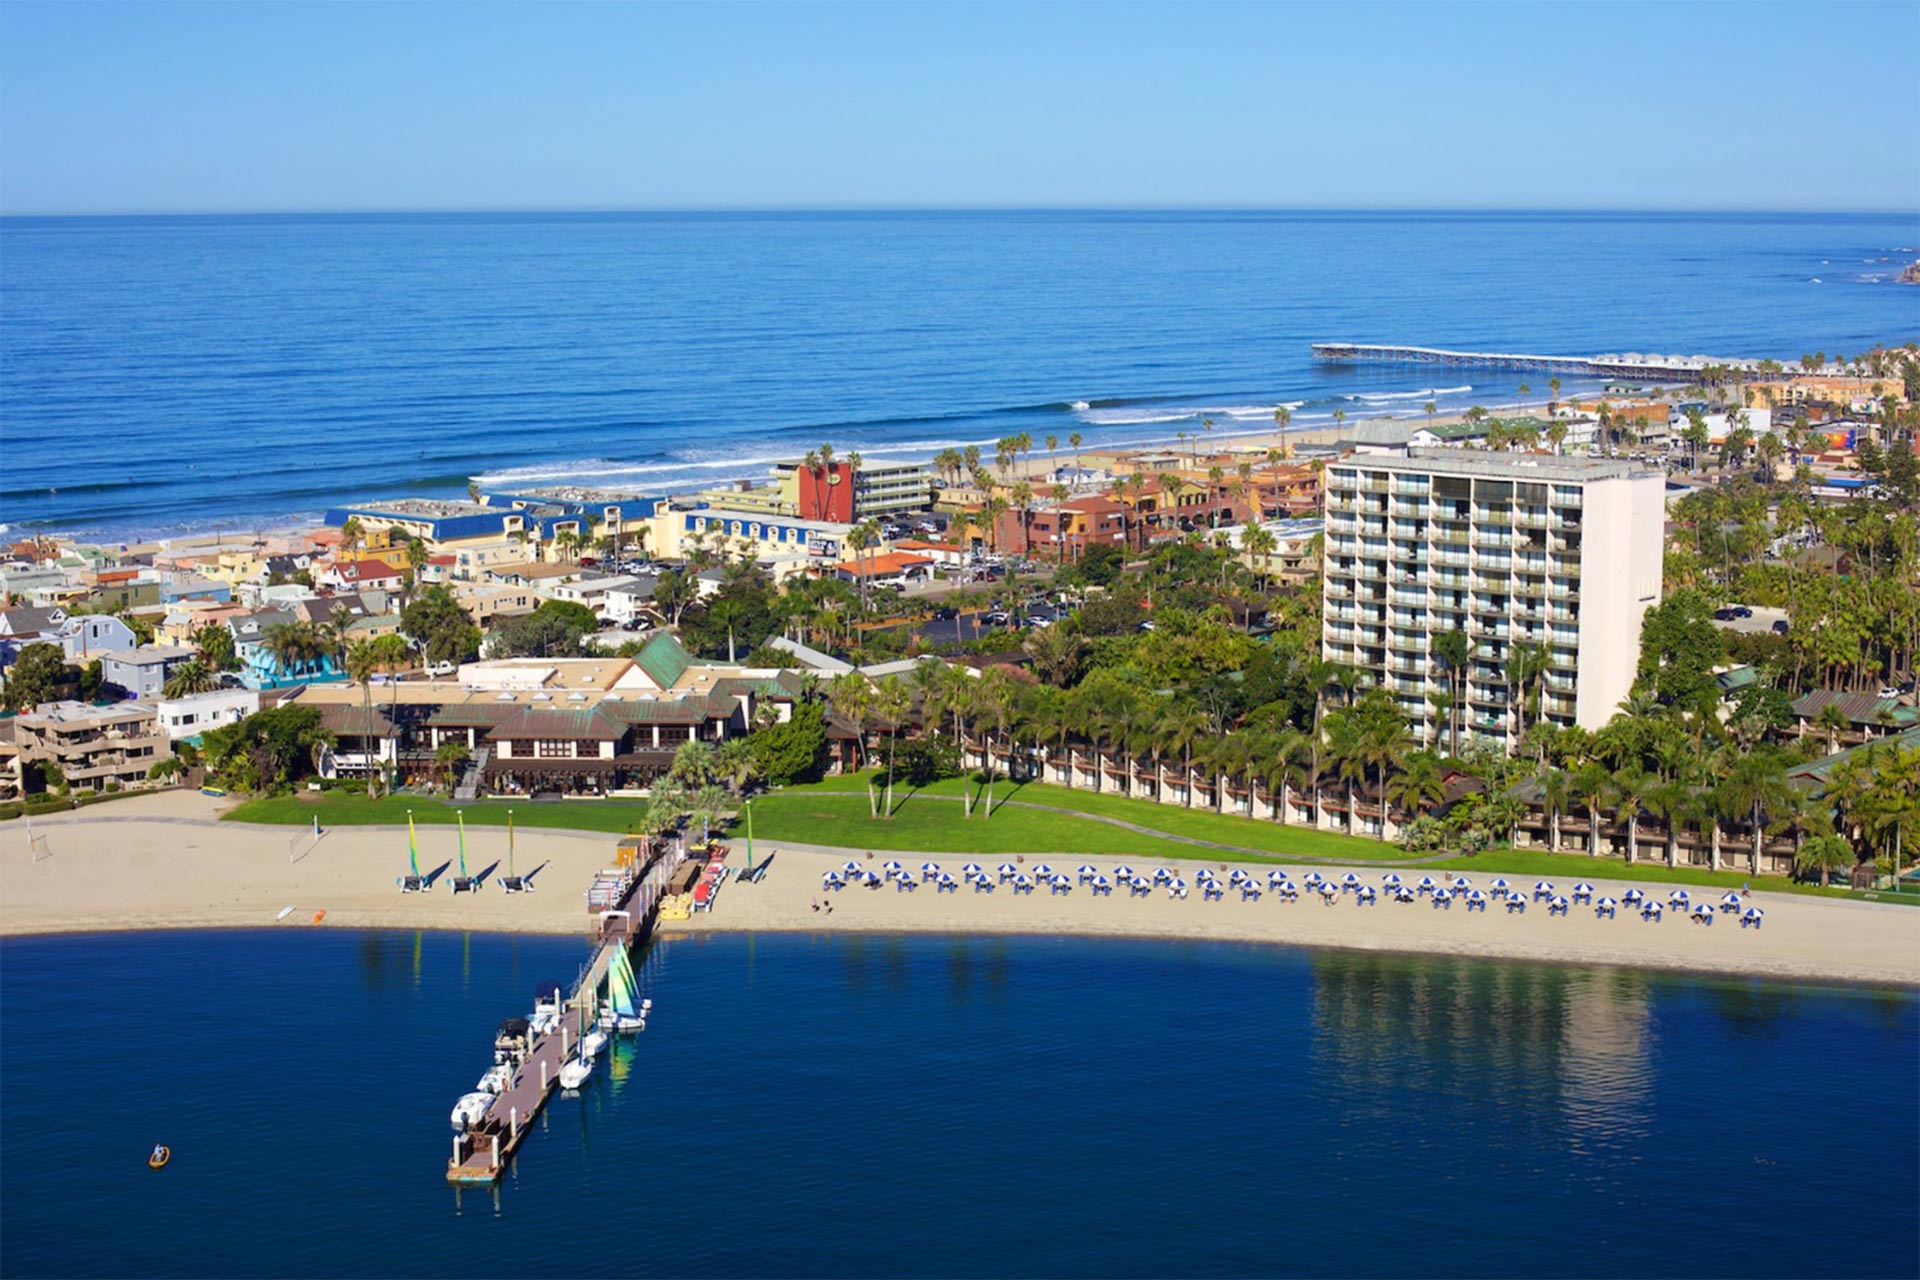 Catamaran Resort Hotel and Spa in San Diego, California